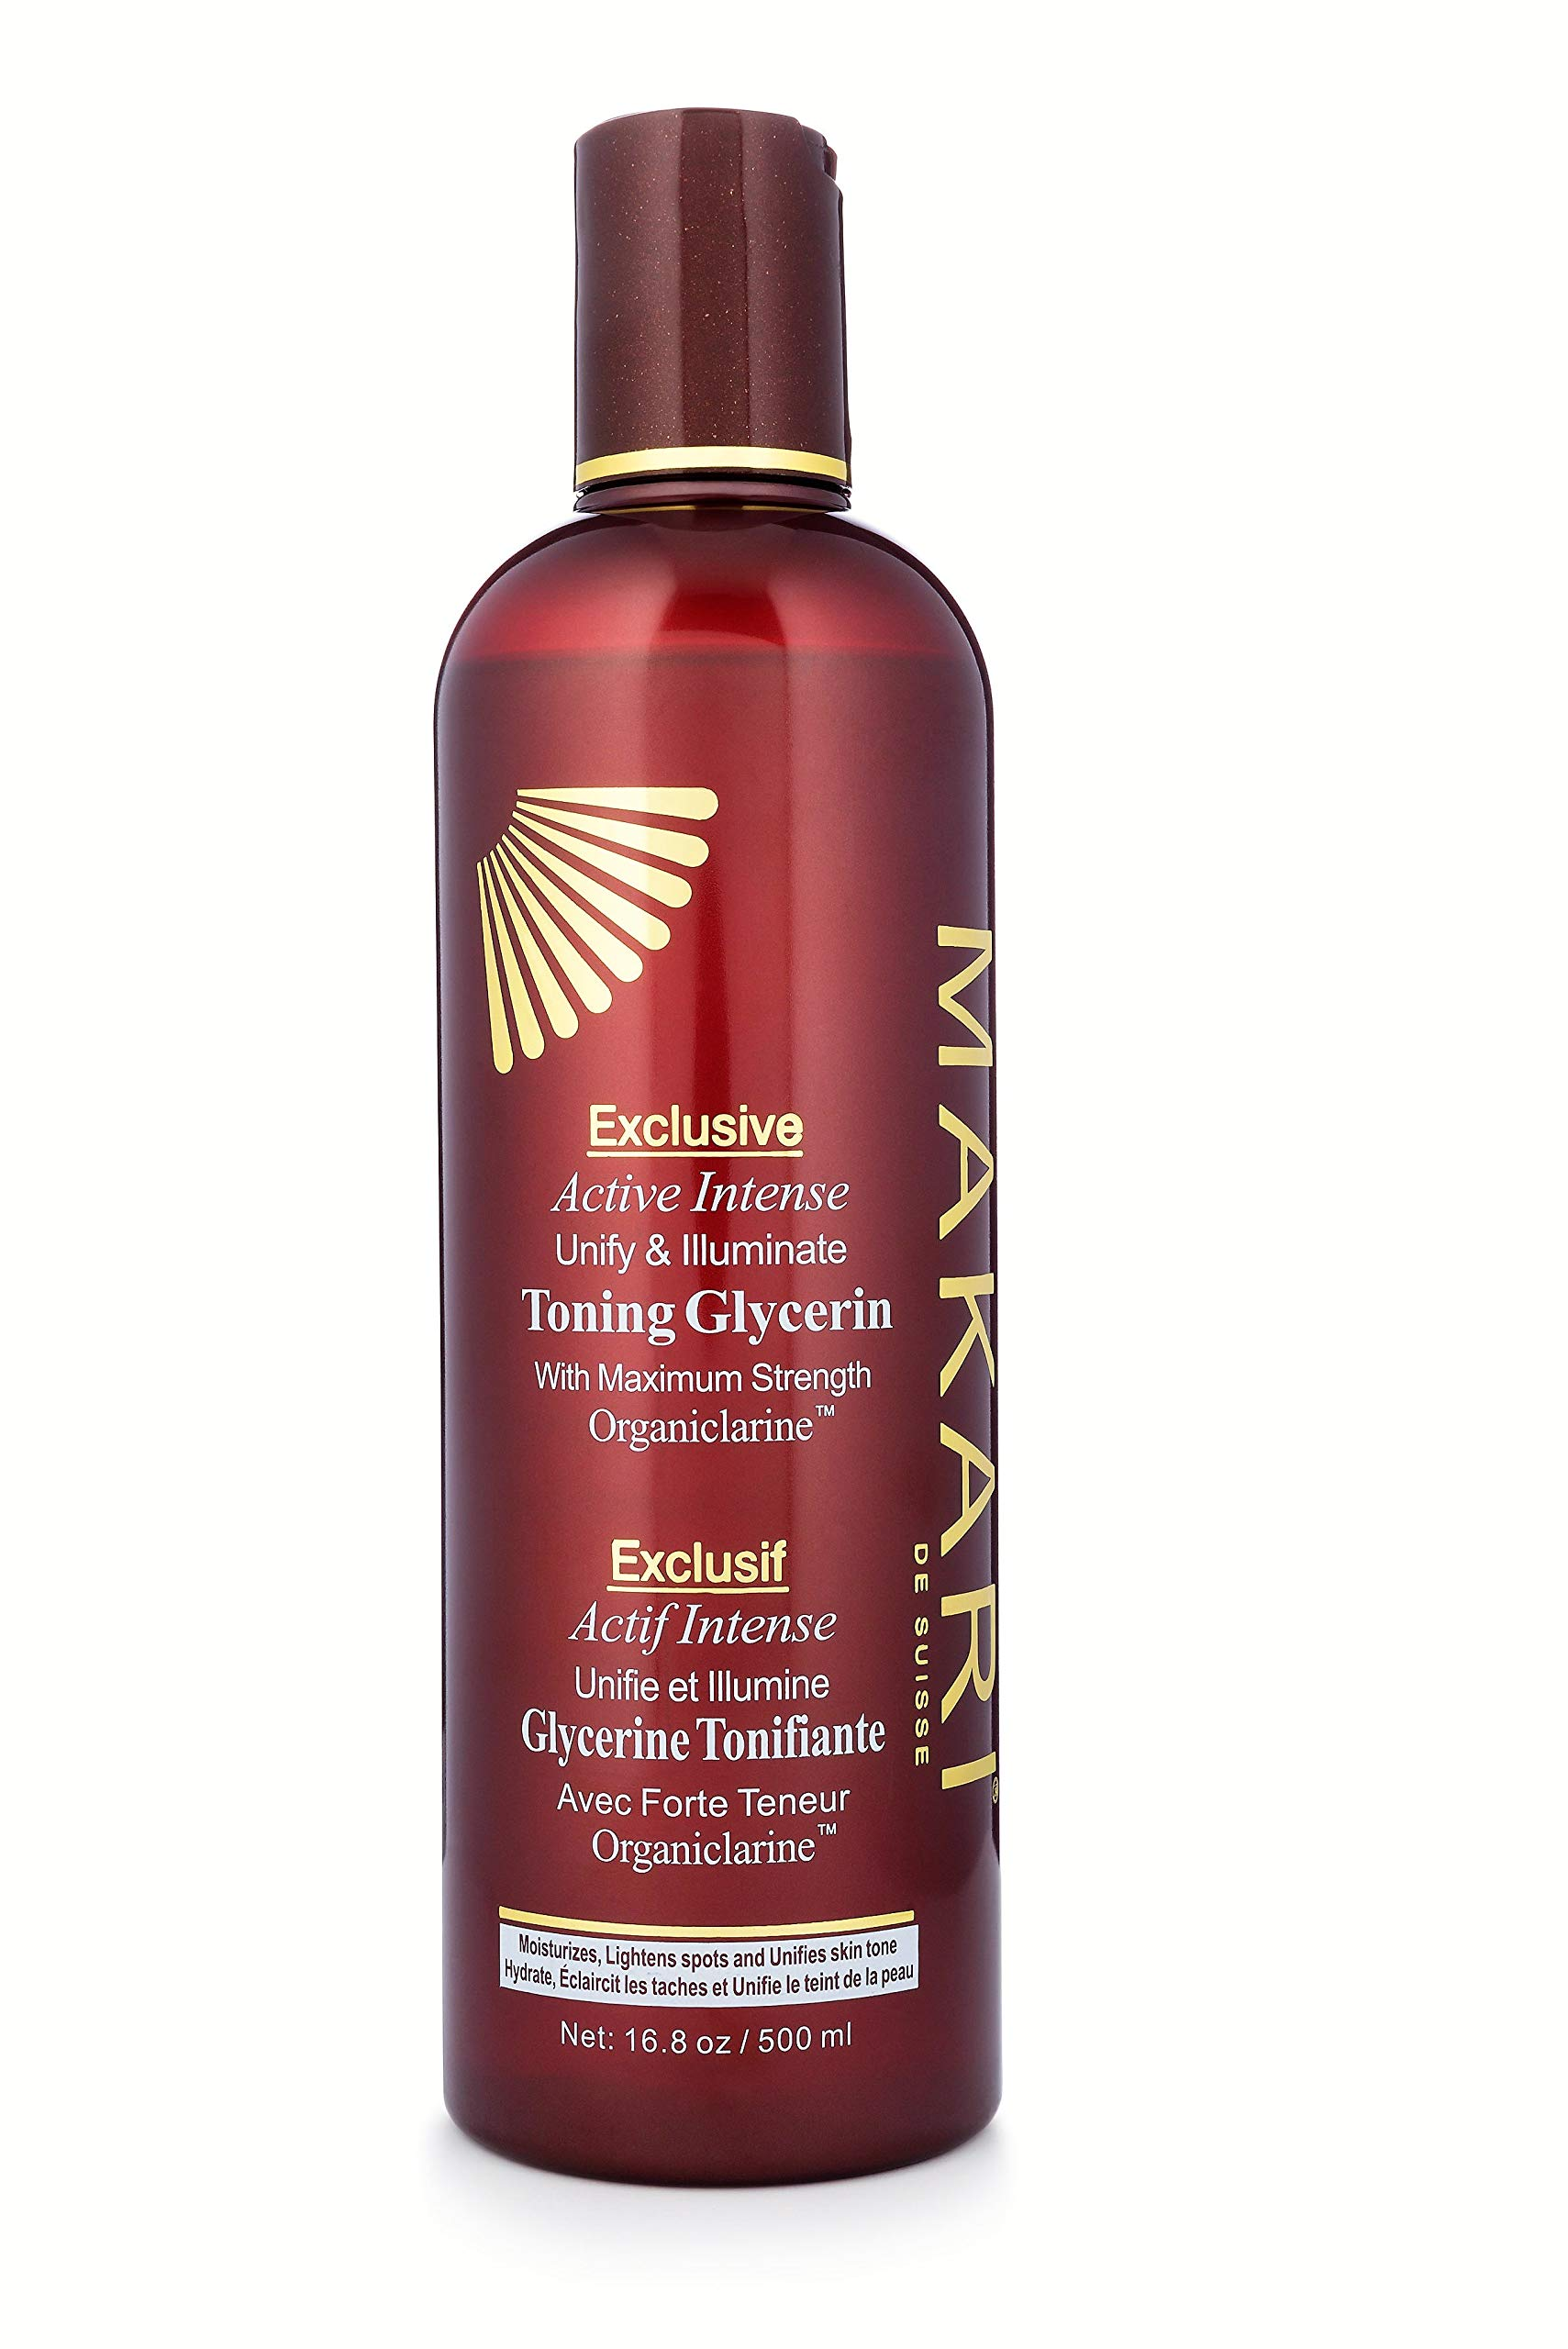 Makari Exclusive Active Intense Toning BODY Glycerin 16.8oz - Skin Lightening & Brightening Moisturizer for Body with Organiclarine - Whitening Treatment for Dark Marks, Age Spots, Scars & Freckles by MAKARI